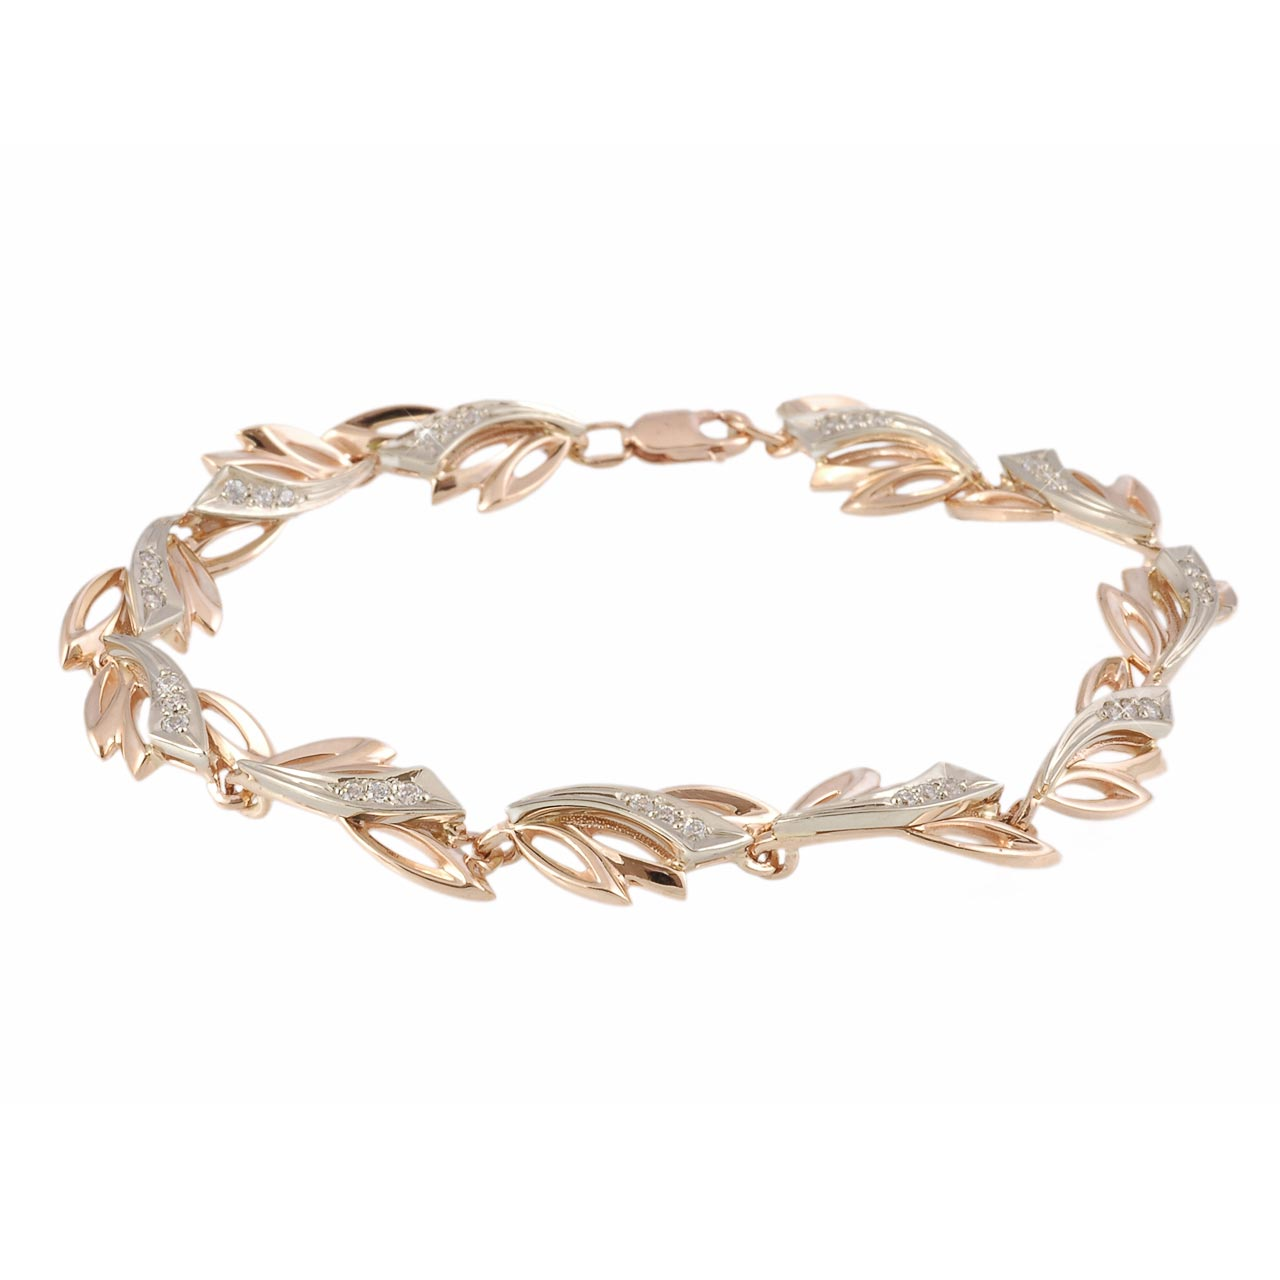 Russian gold bracelet with cubic zirconia 1